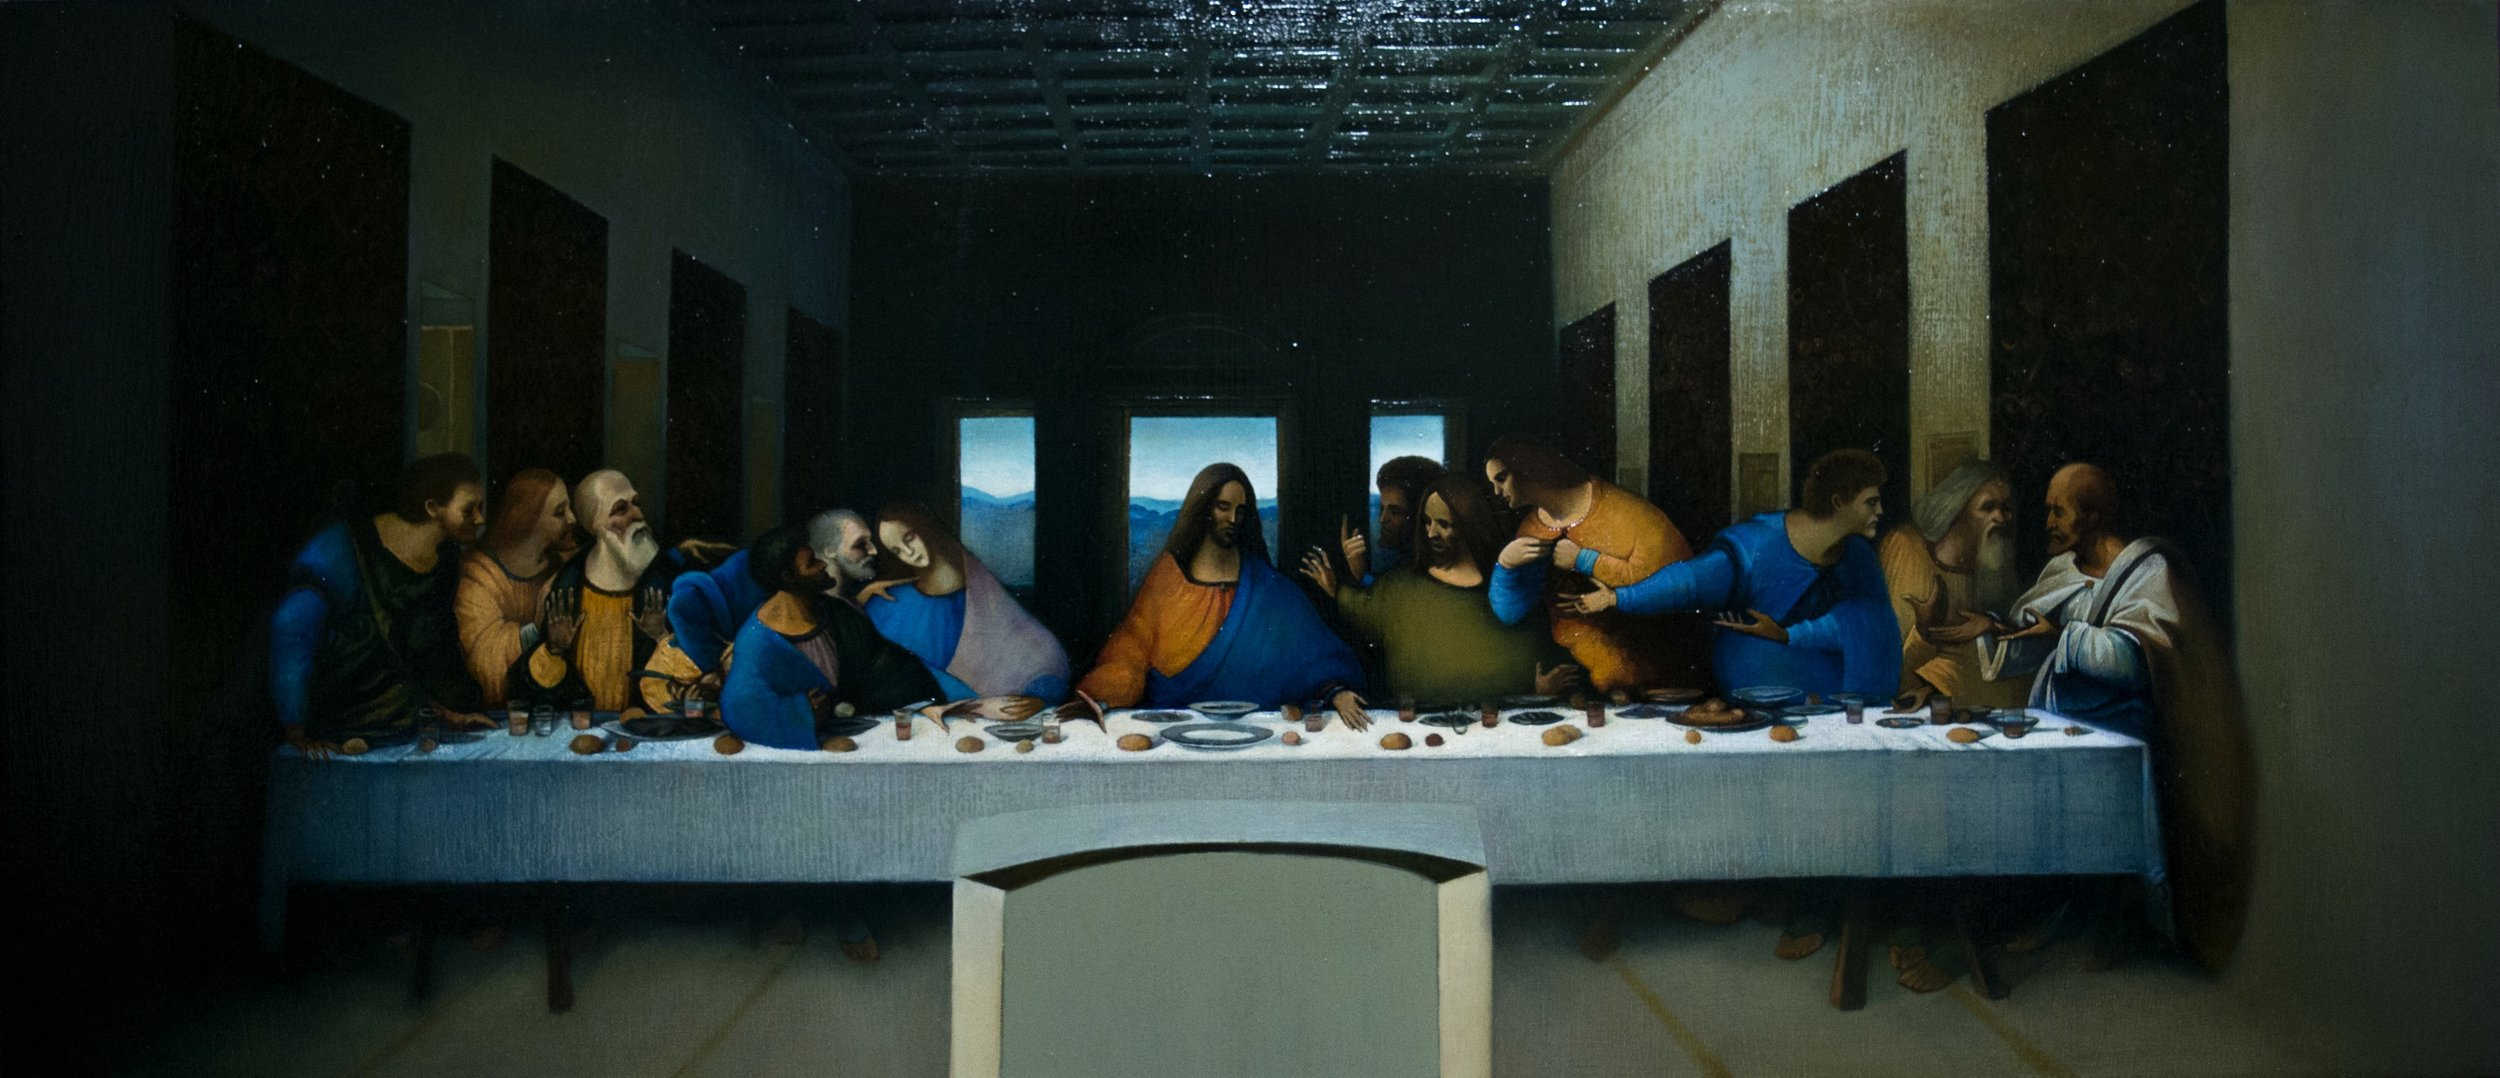 The Last Supper - Leonardo da Vinci by Ghenadie Sontu oil on canvas, 120 x 60 cm, 2016 Private Collection